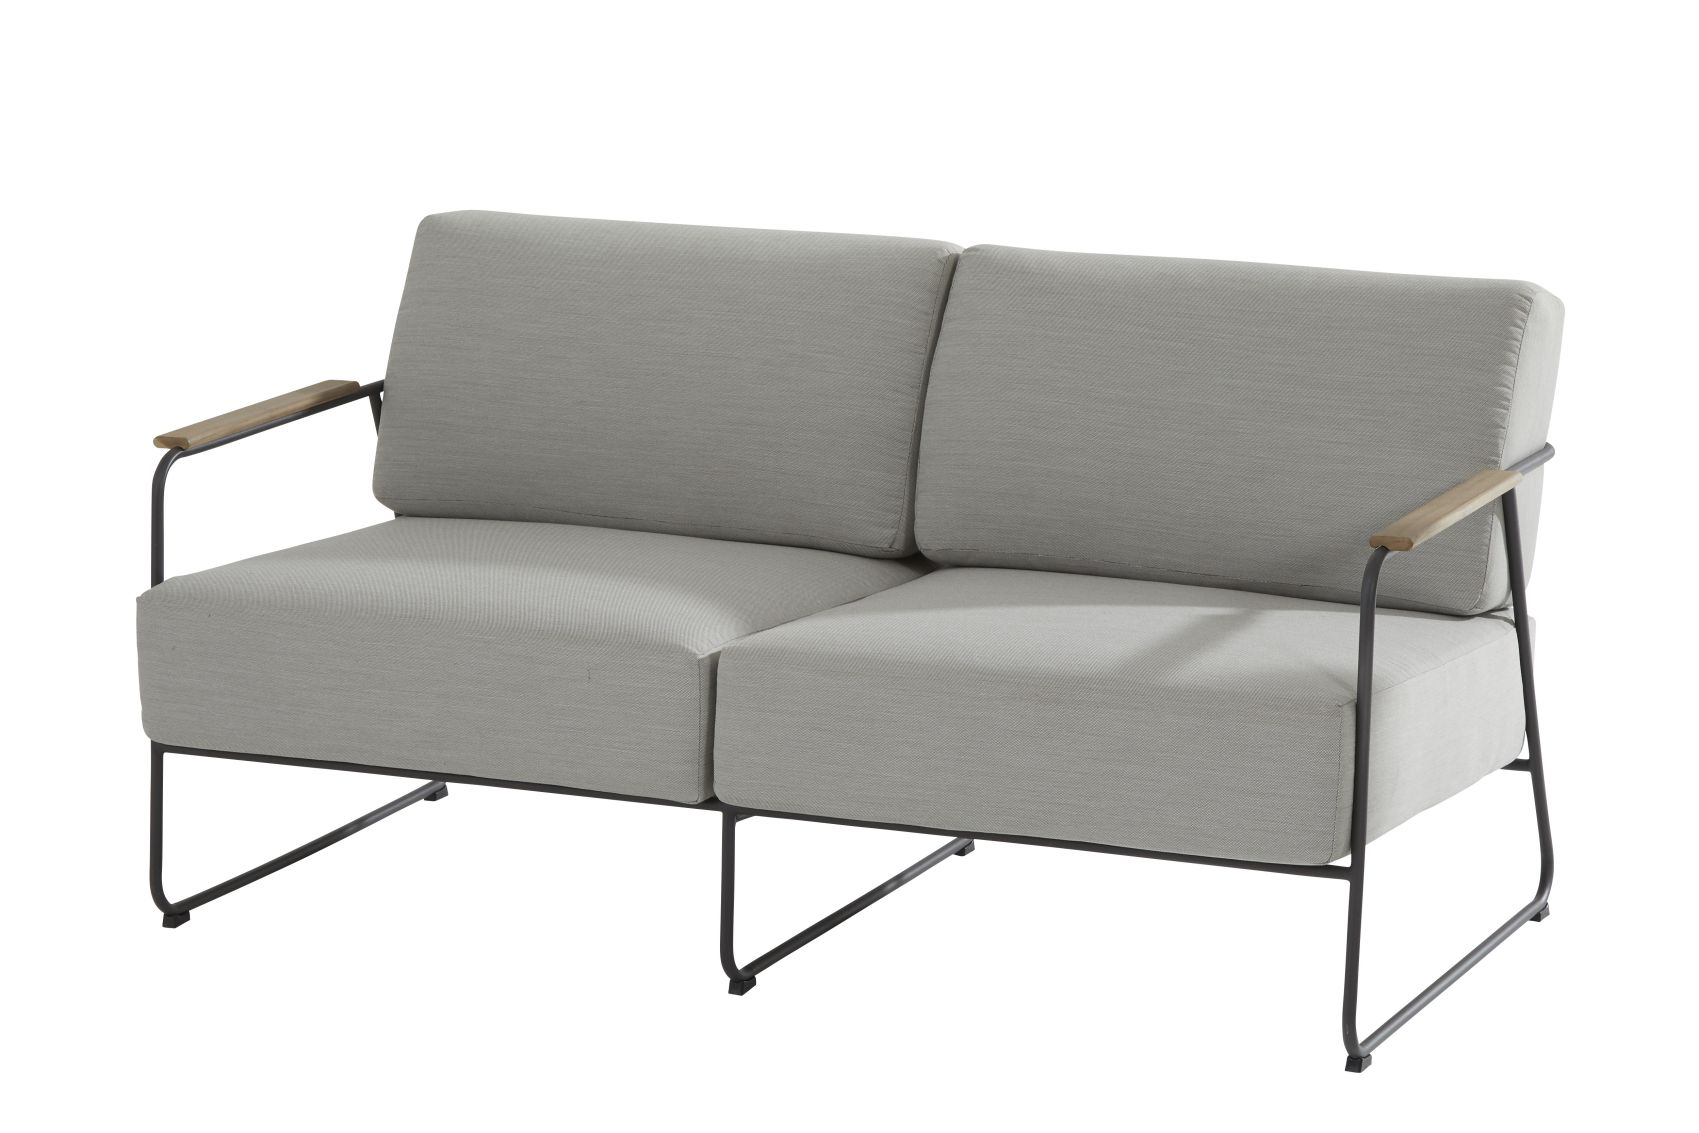 Top 4 Seasons Outdoor | Coast loungebank - SALE - Latour OM26